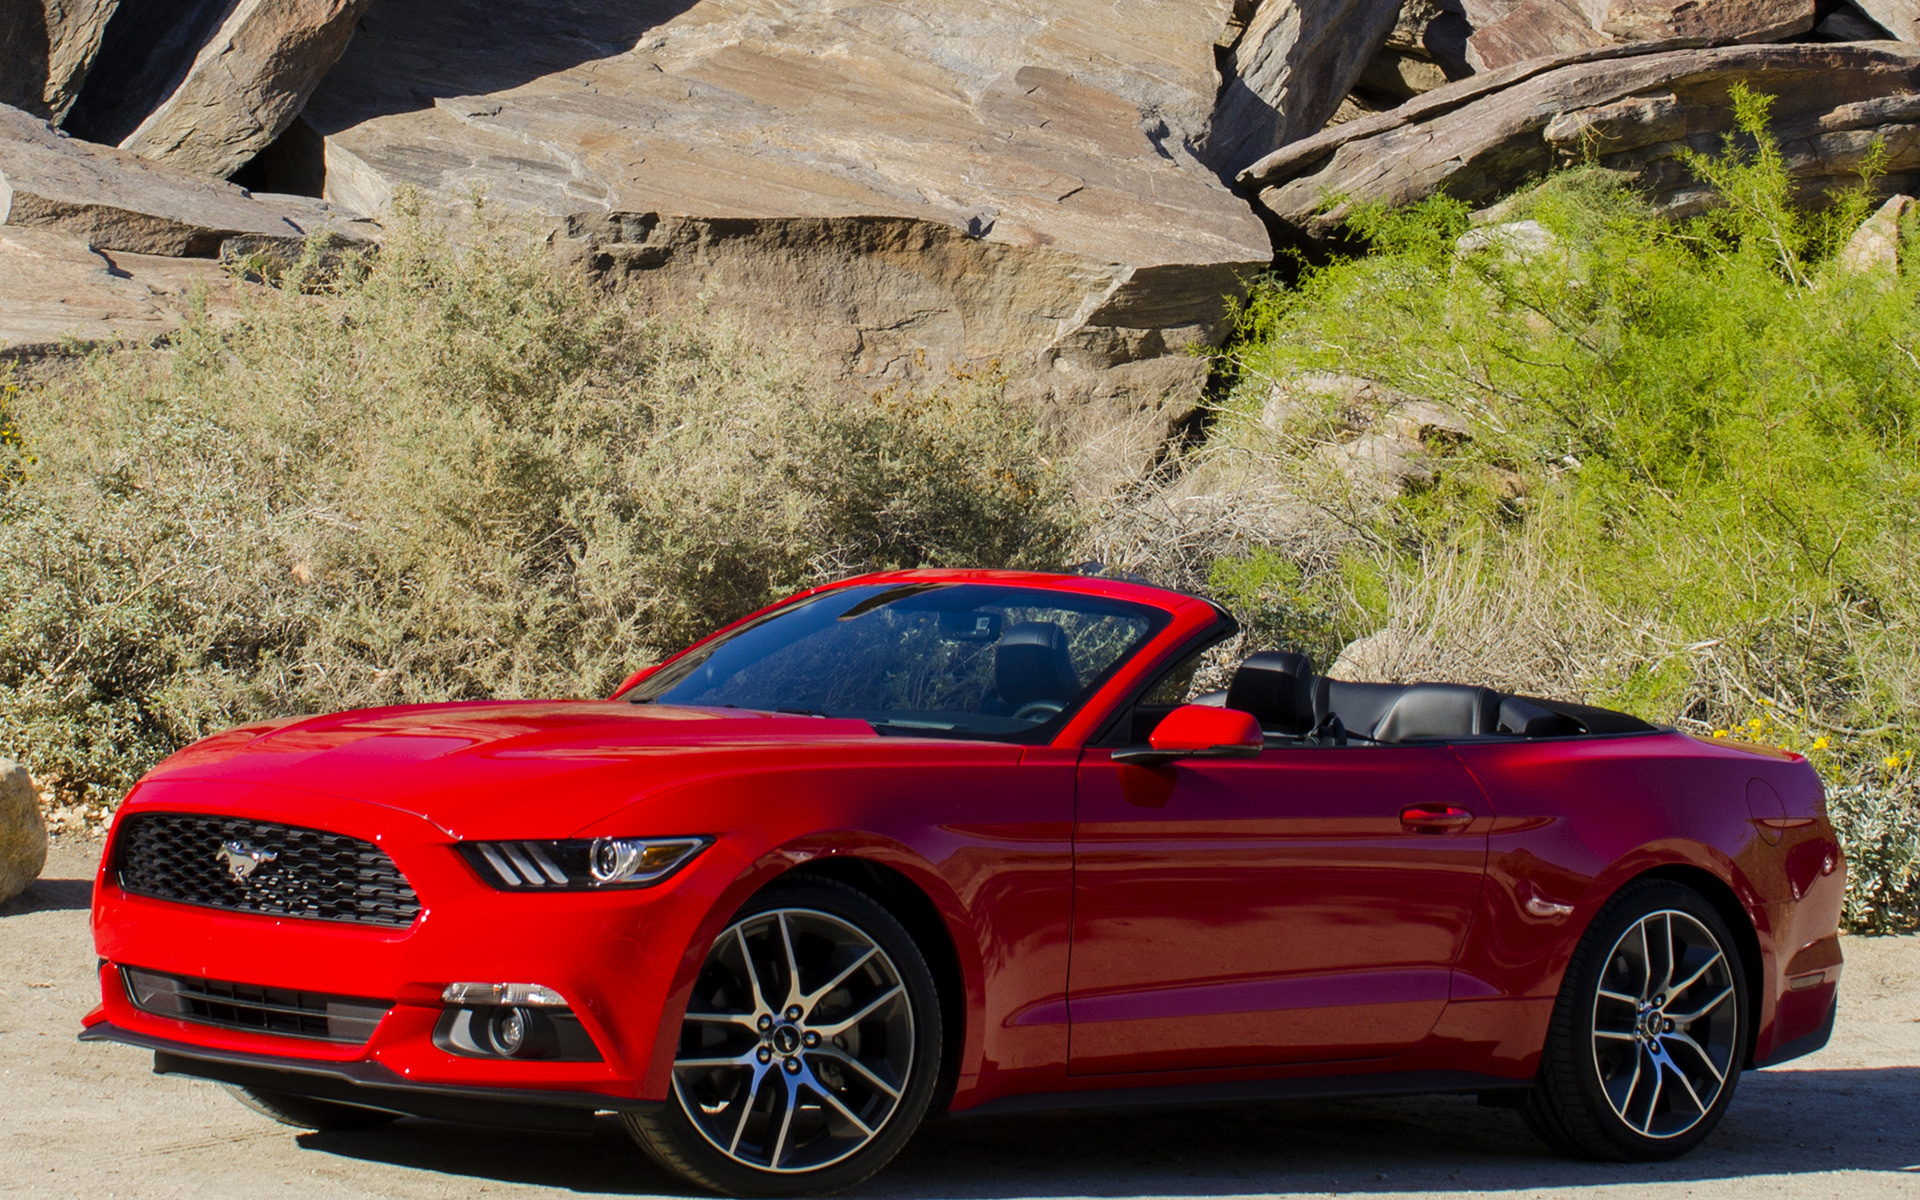 Lincoln Wallpaper Car 2015 Ford Mustang Ecoboost Convertible Wallpapers And Hd